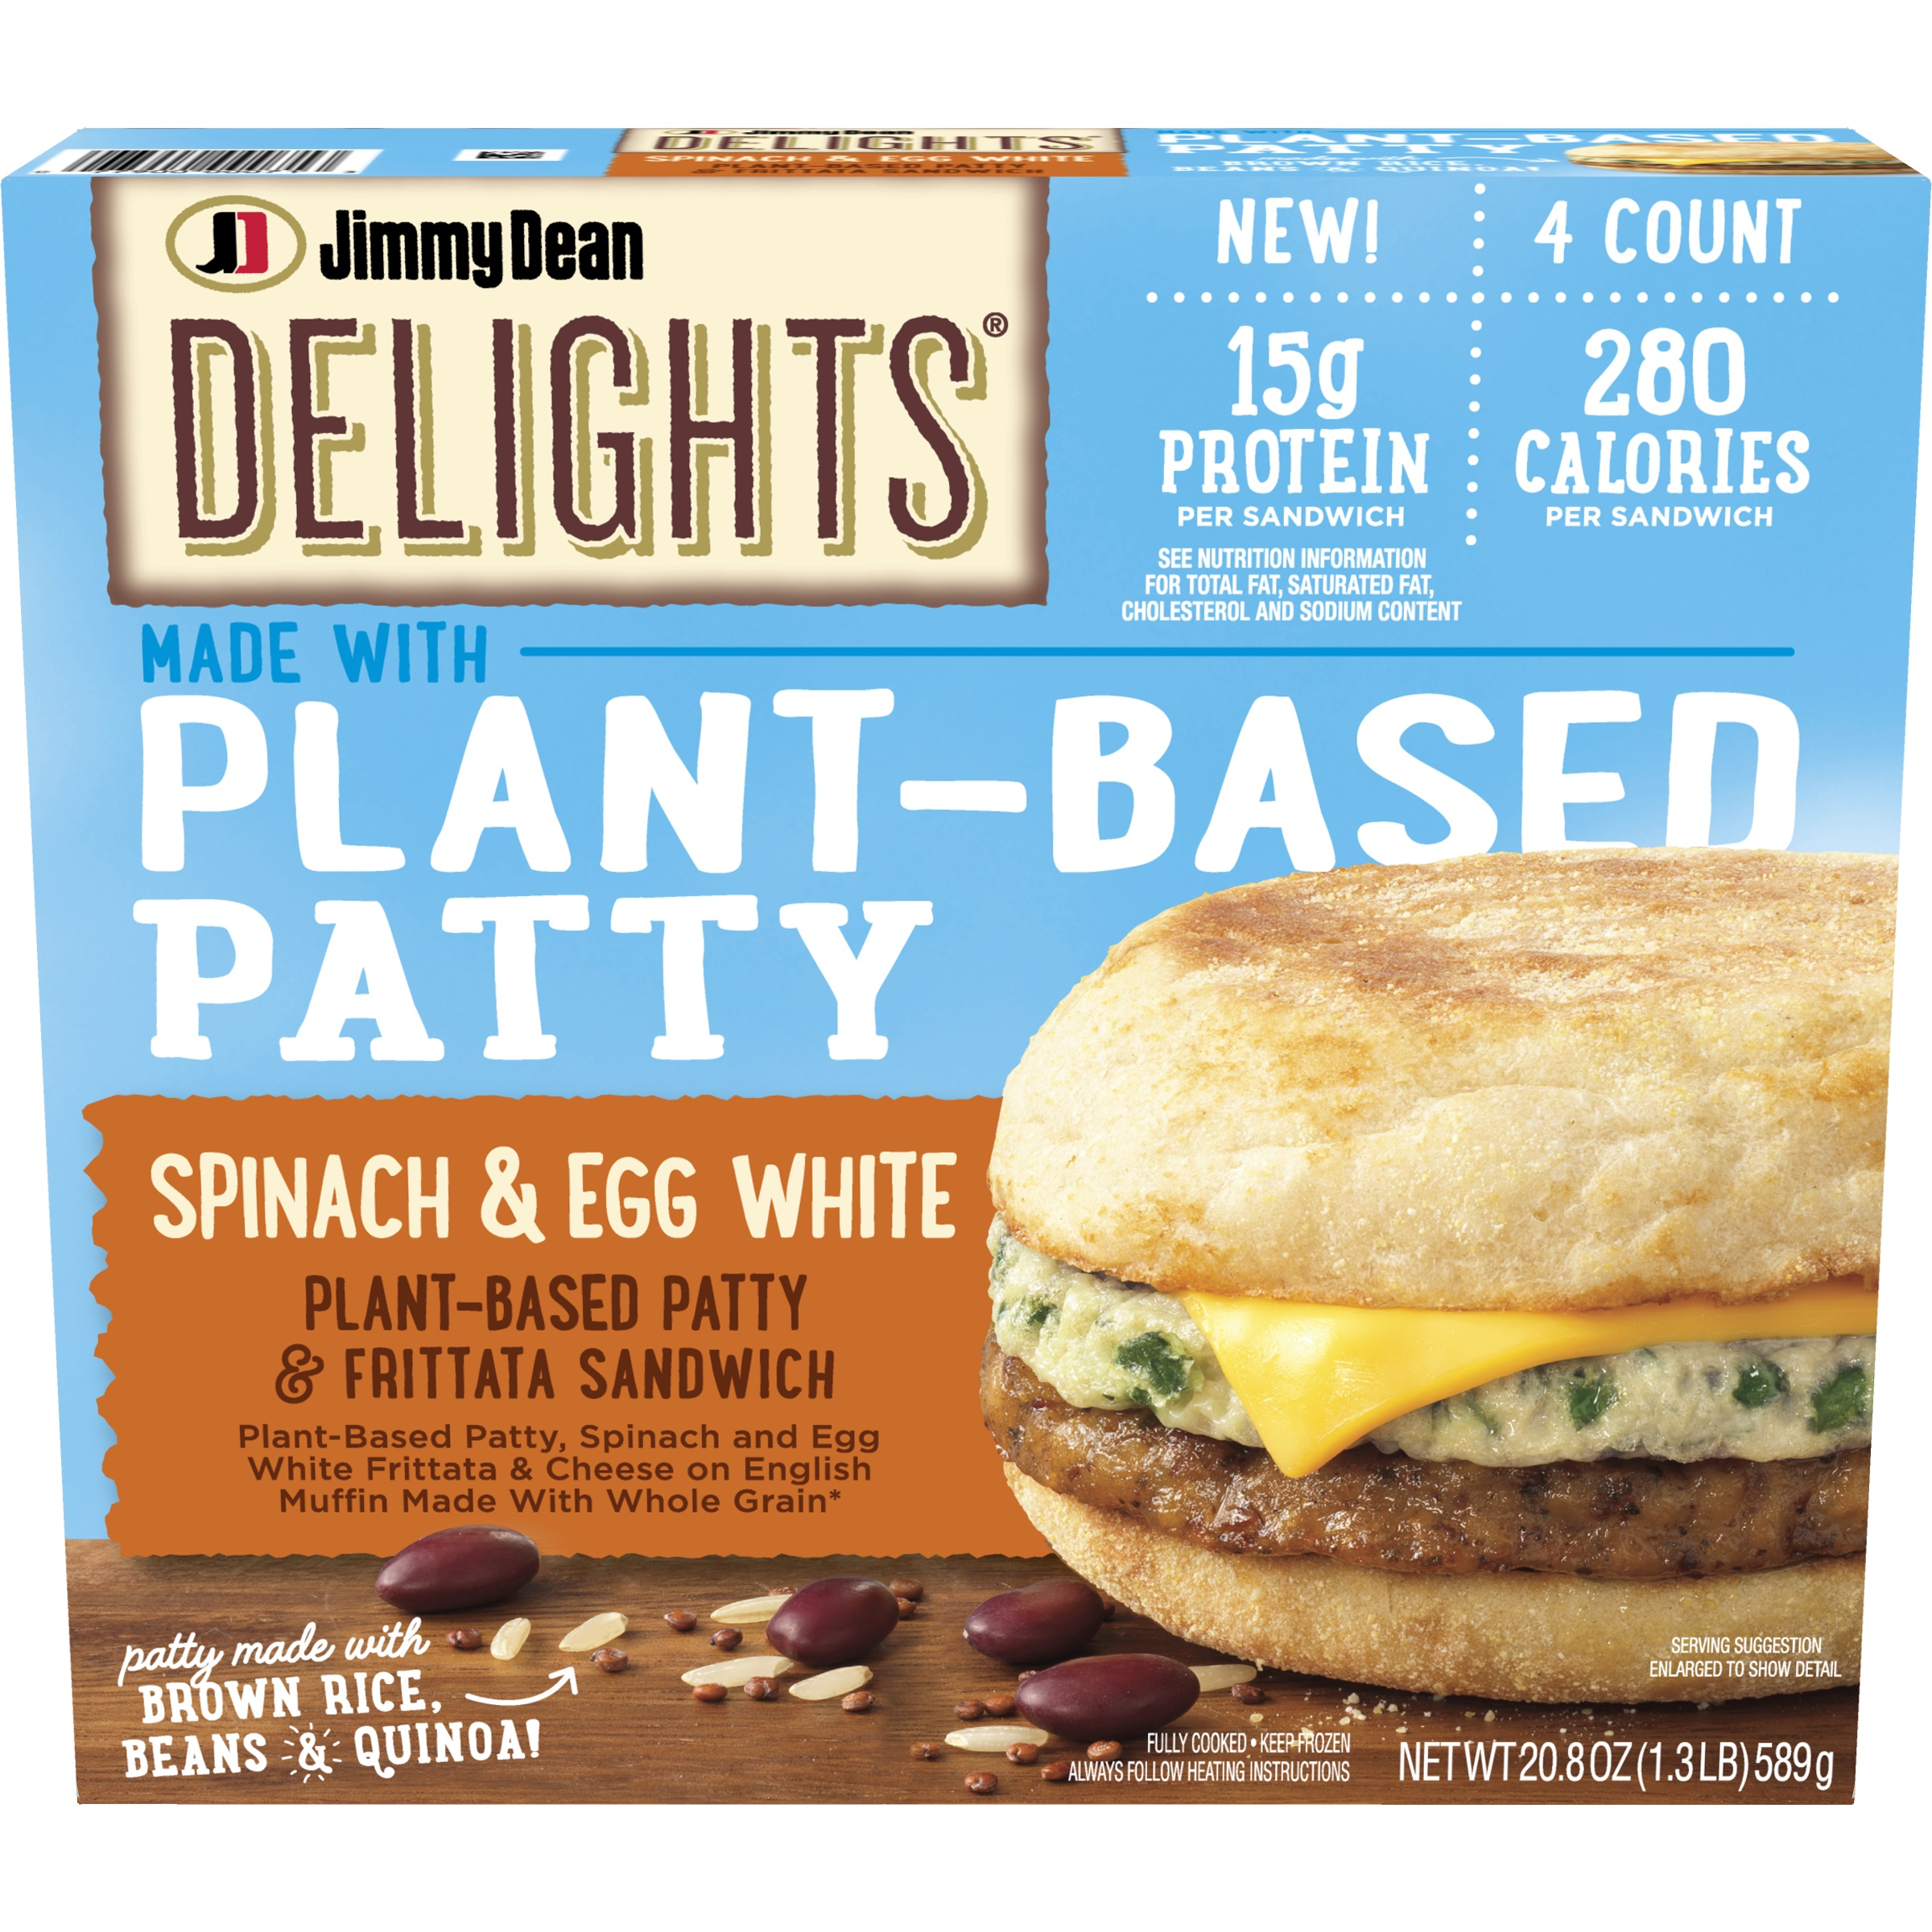 Jimmy Dean Delights® Plant-Based Patty & Frittata Sandwich features a vegetable and grain patty made of soy protein, black beans, brown rice, quinoa, and egg white topped with a spinach and egg white frittata and American cheese, all inside a whole wheat English muffin.